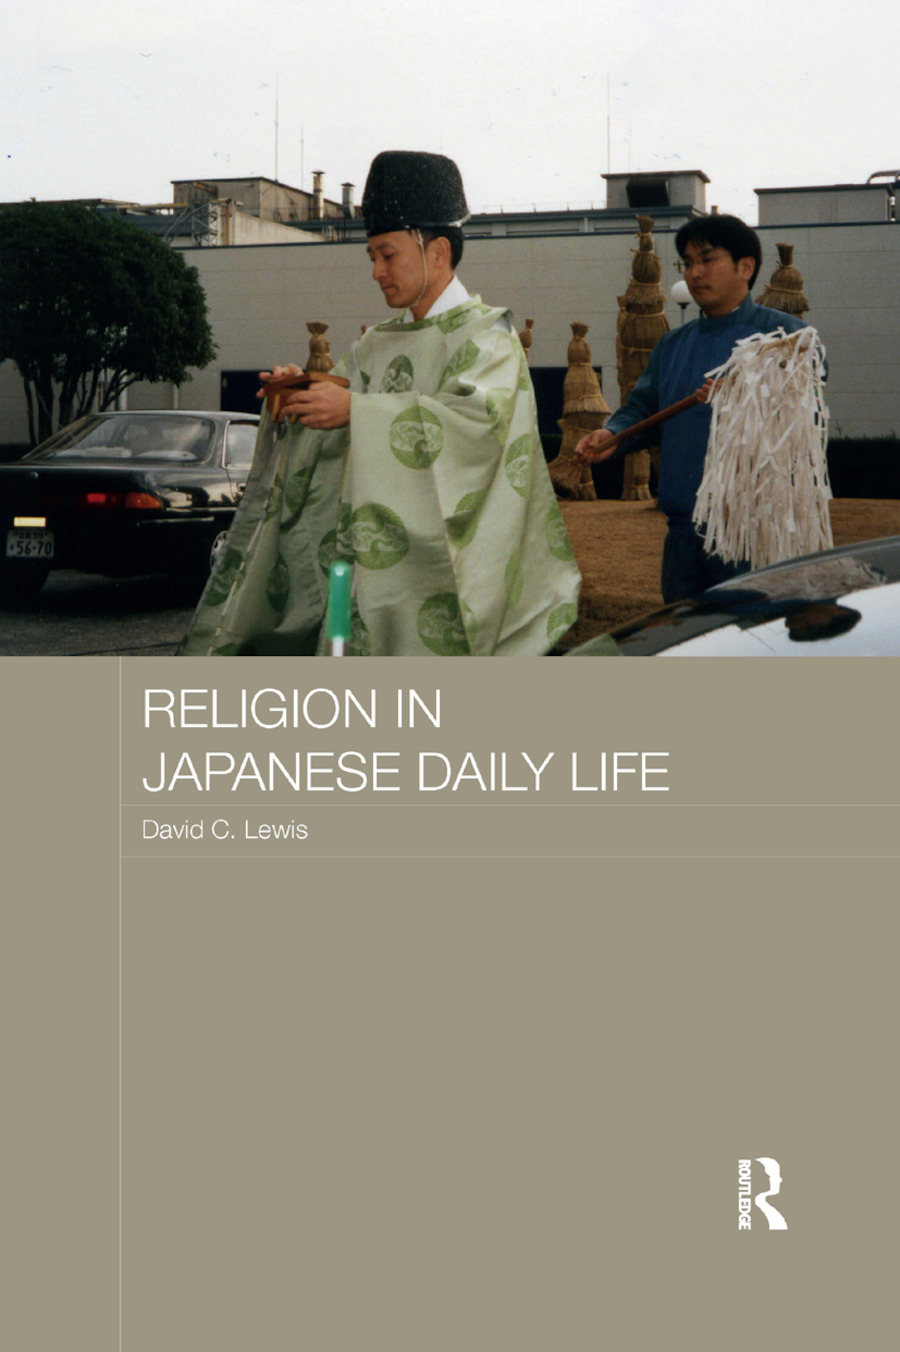 Religion in Japanese Daily Life book cover